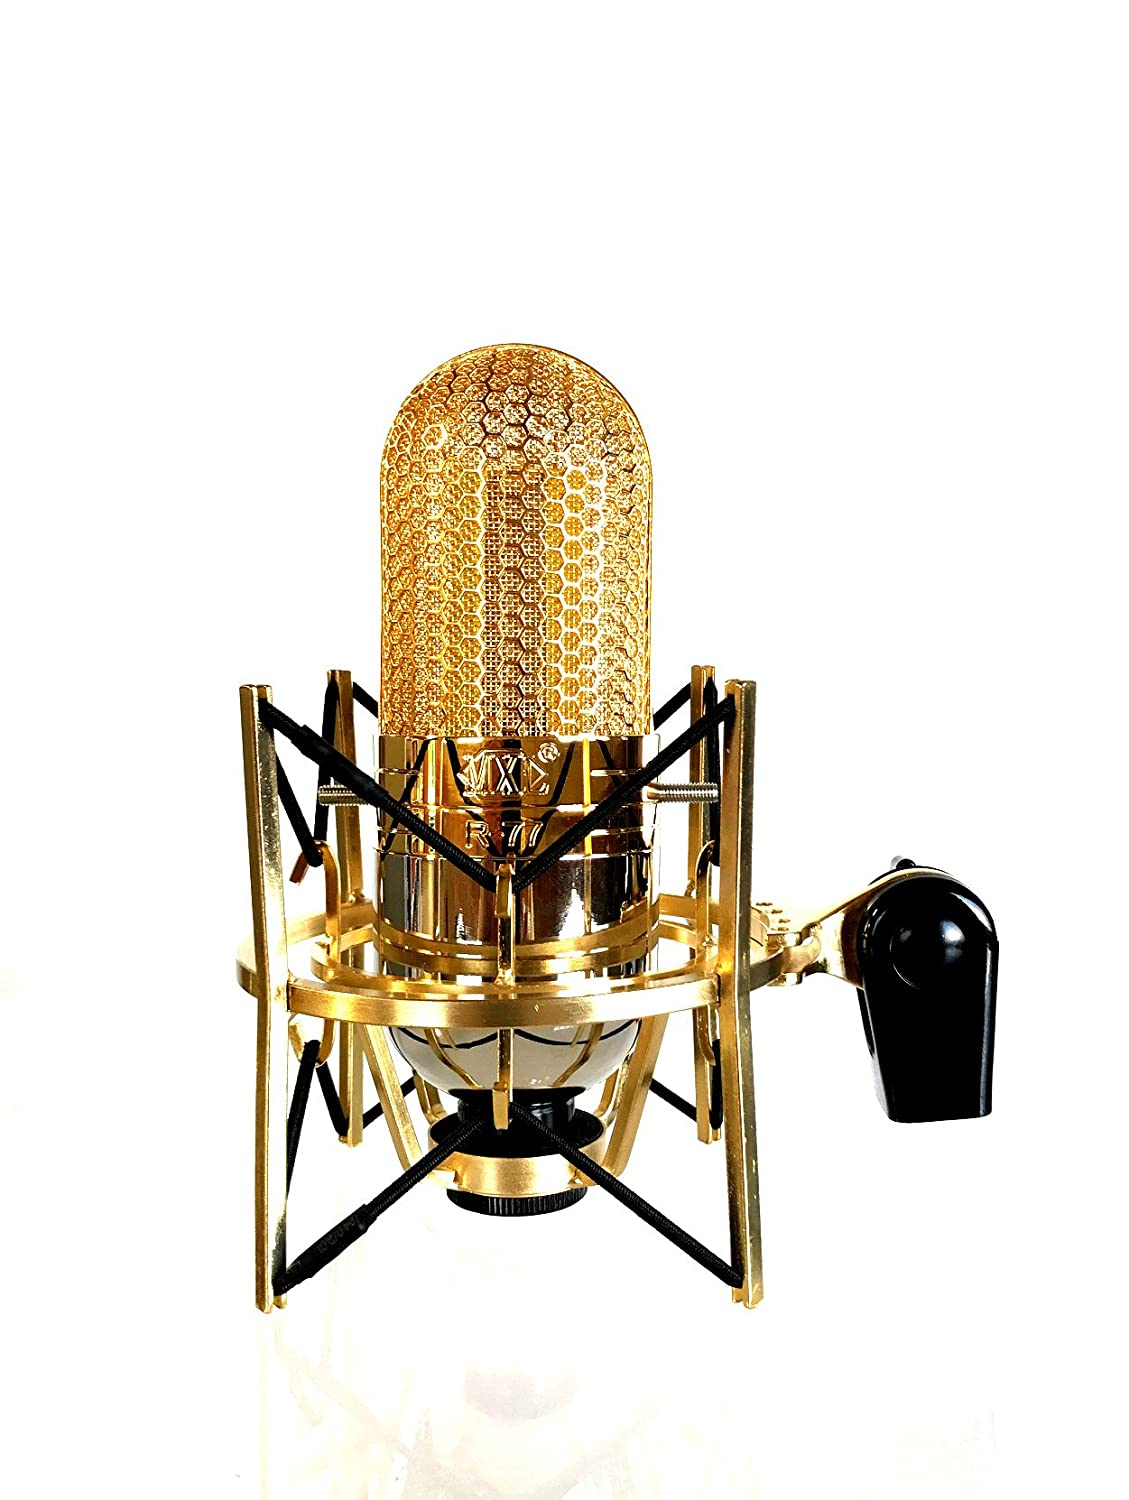 MXL R77 Classic Ribbon Microphone with Mogami XLR Cable Desktop Mic Stand and USM-001-G Shockmount